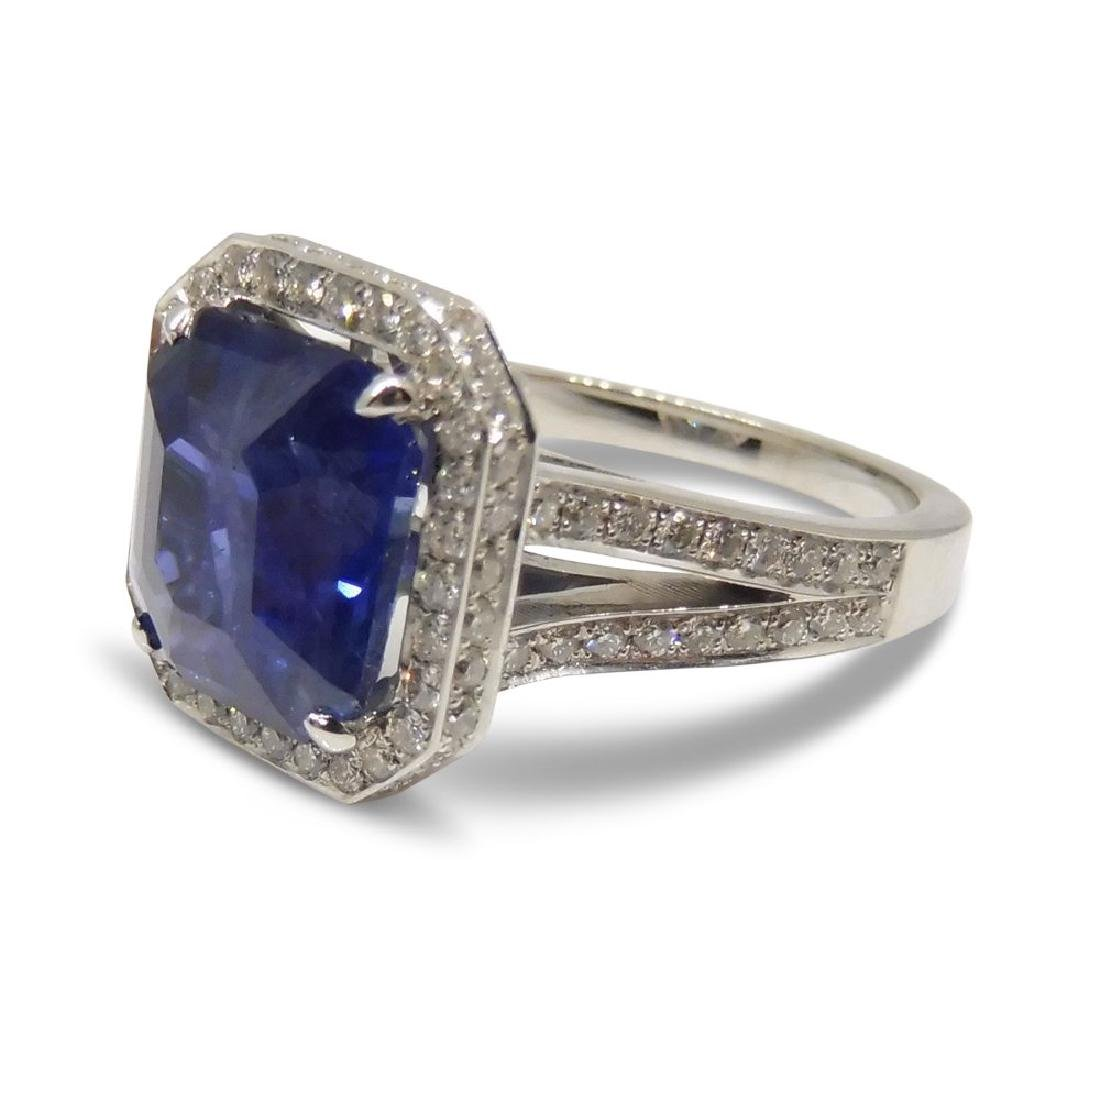 18K White Gold Unheated Sapphire Ring, 5.75ctw - 5